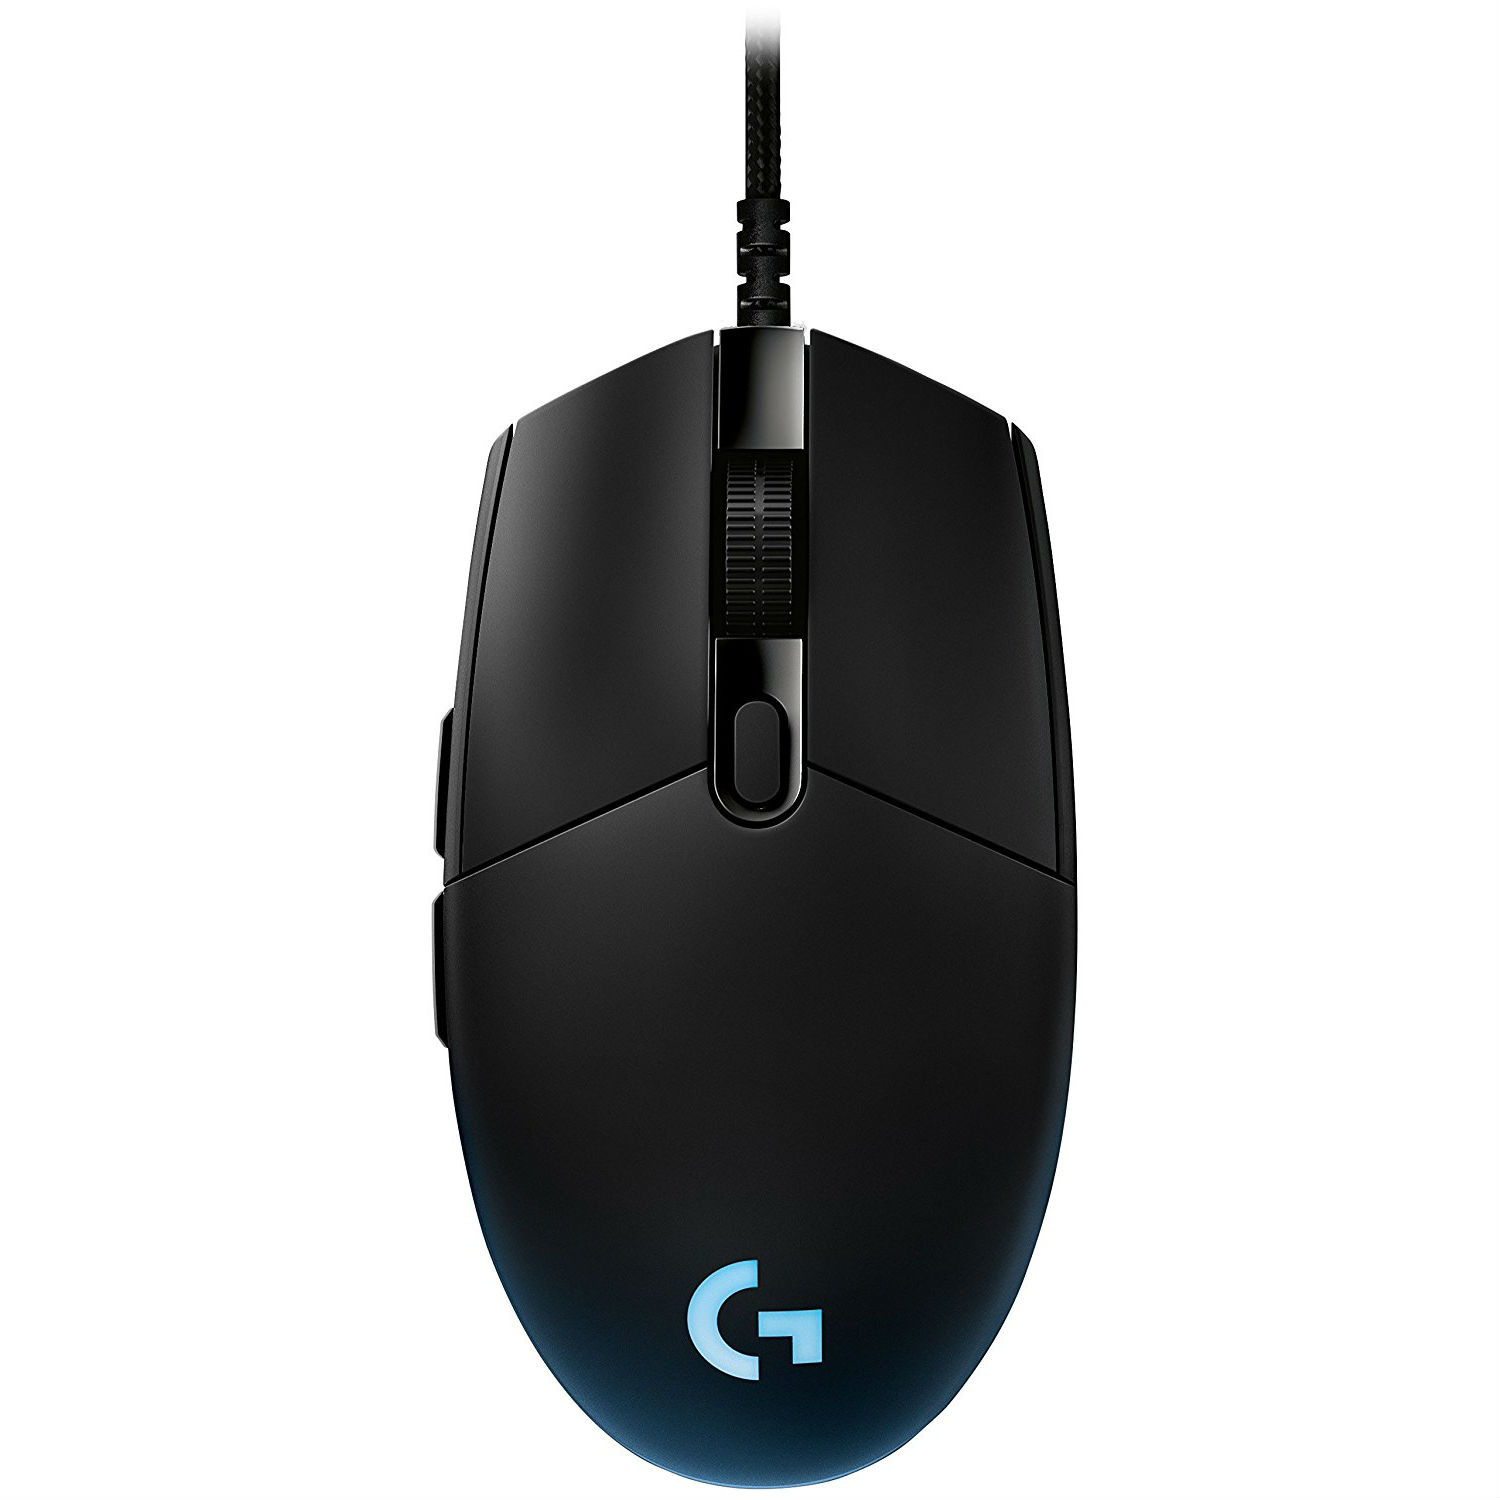 Image of Logitech G Pro Gaming Mouse - Black